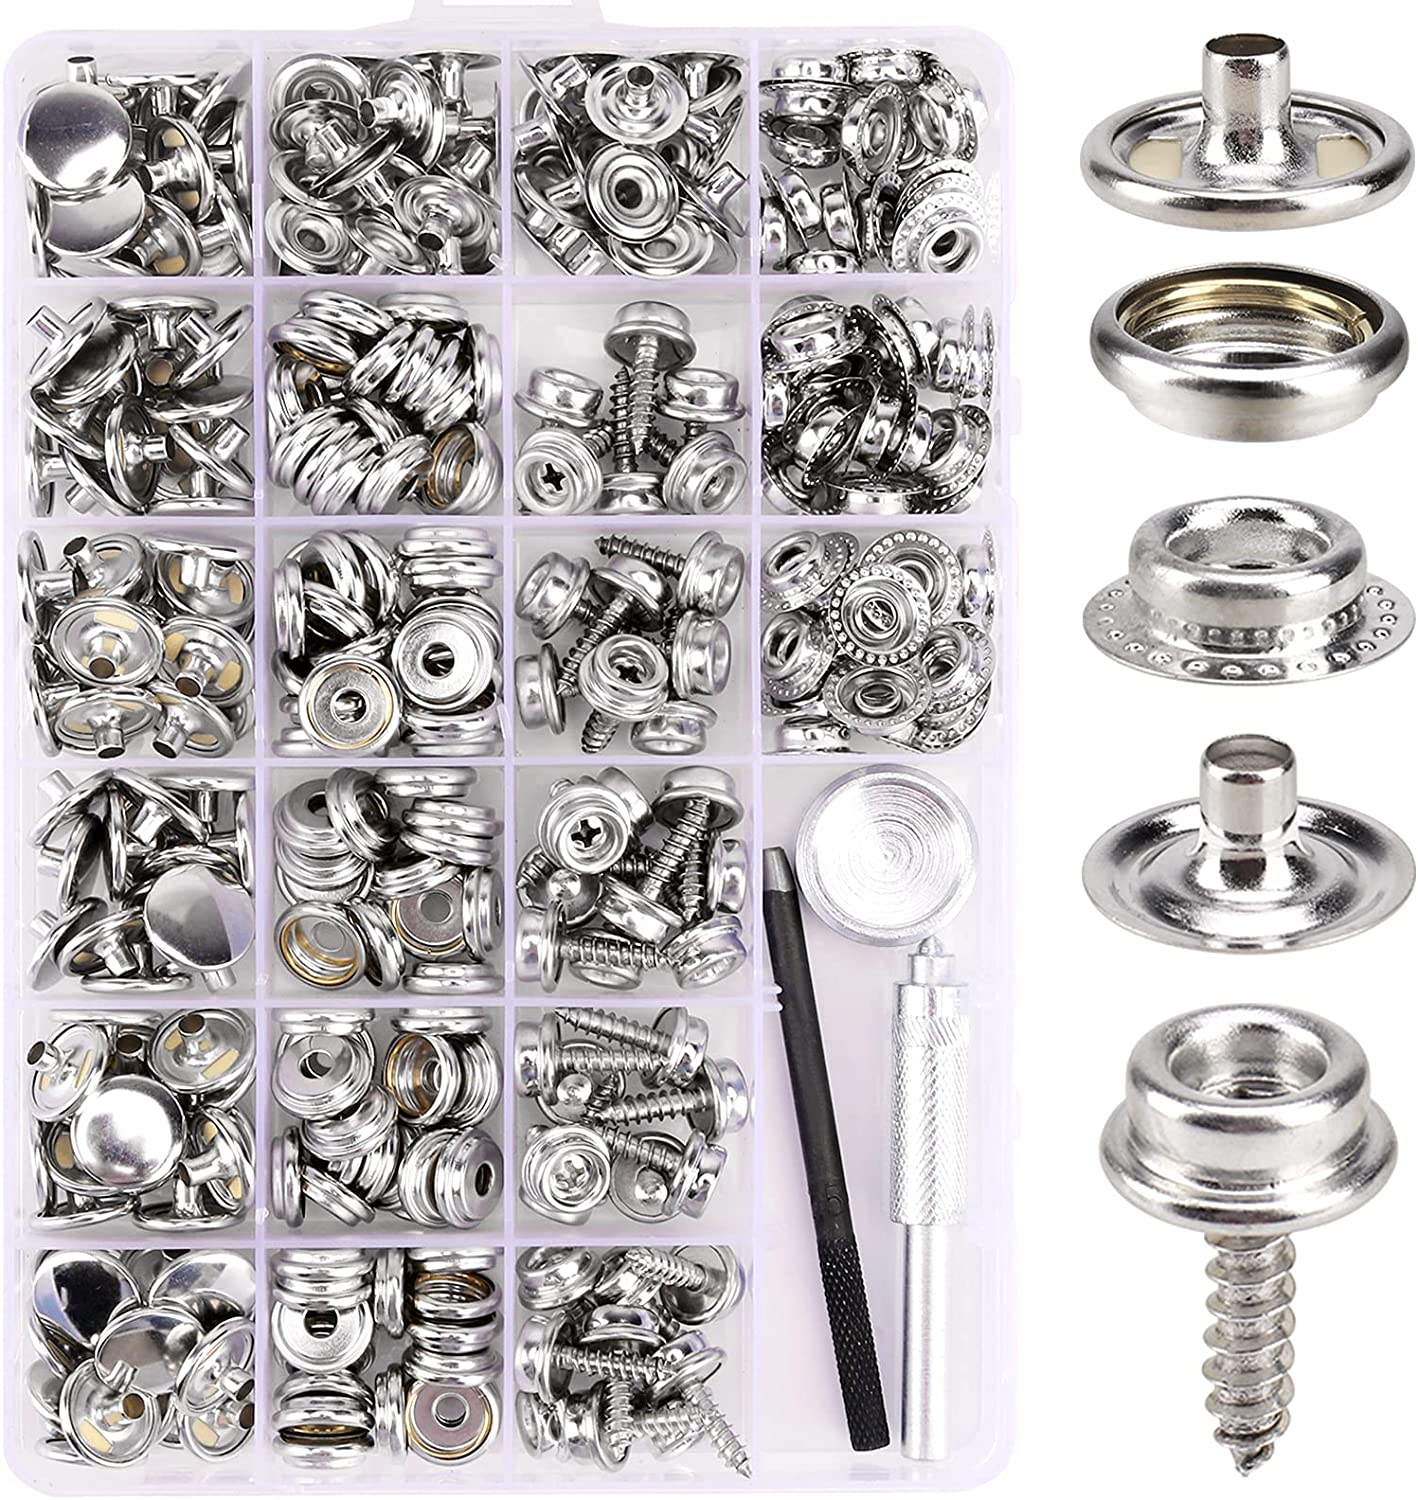 323 Piece Canvas Snap Kit, Meifuly Marine Grade Stainless Steel (Caps, Sockets, Screws, Fabric Base Components) for DIY Cover, Canvas Snap Kit with Material Hole Punch and Setting Tools